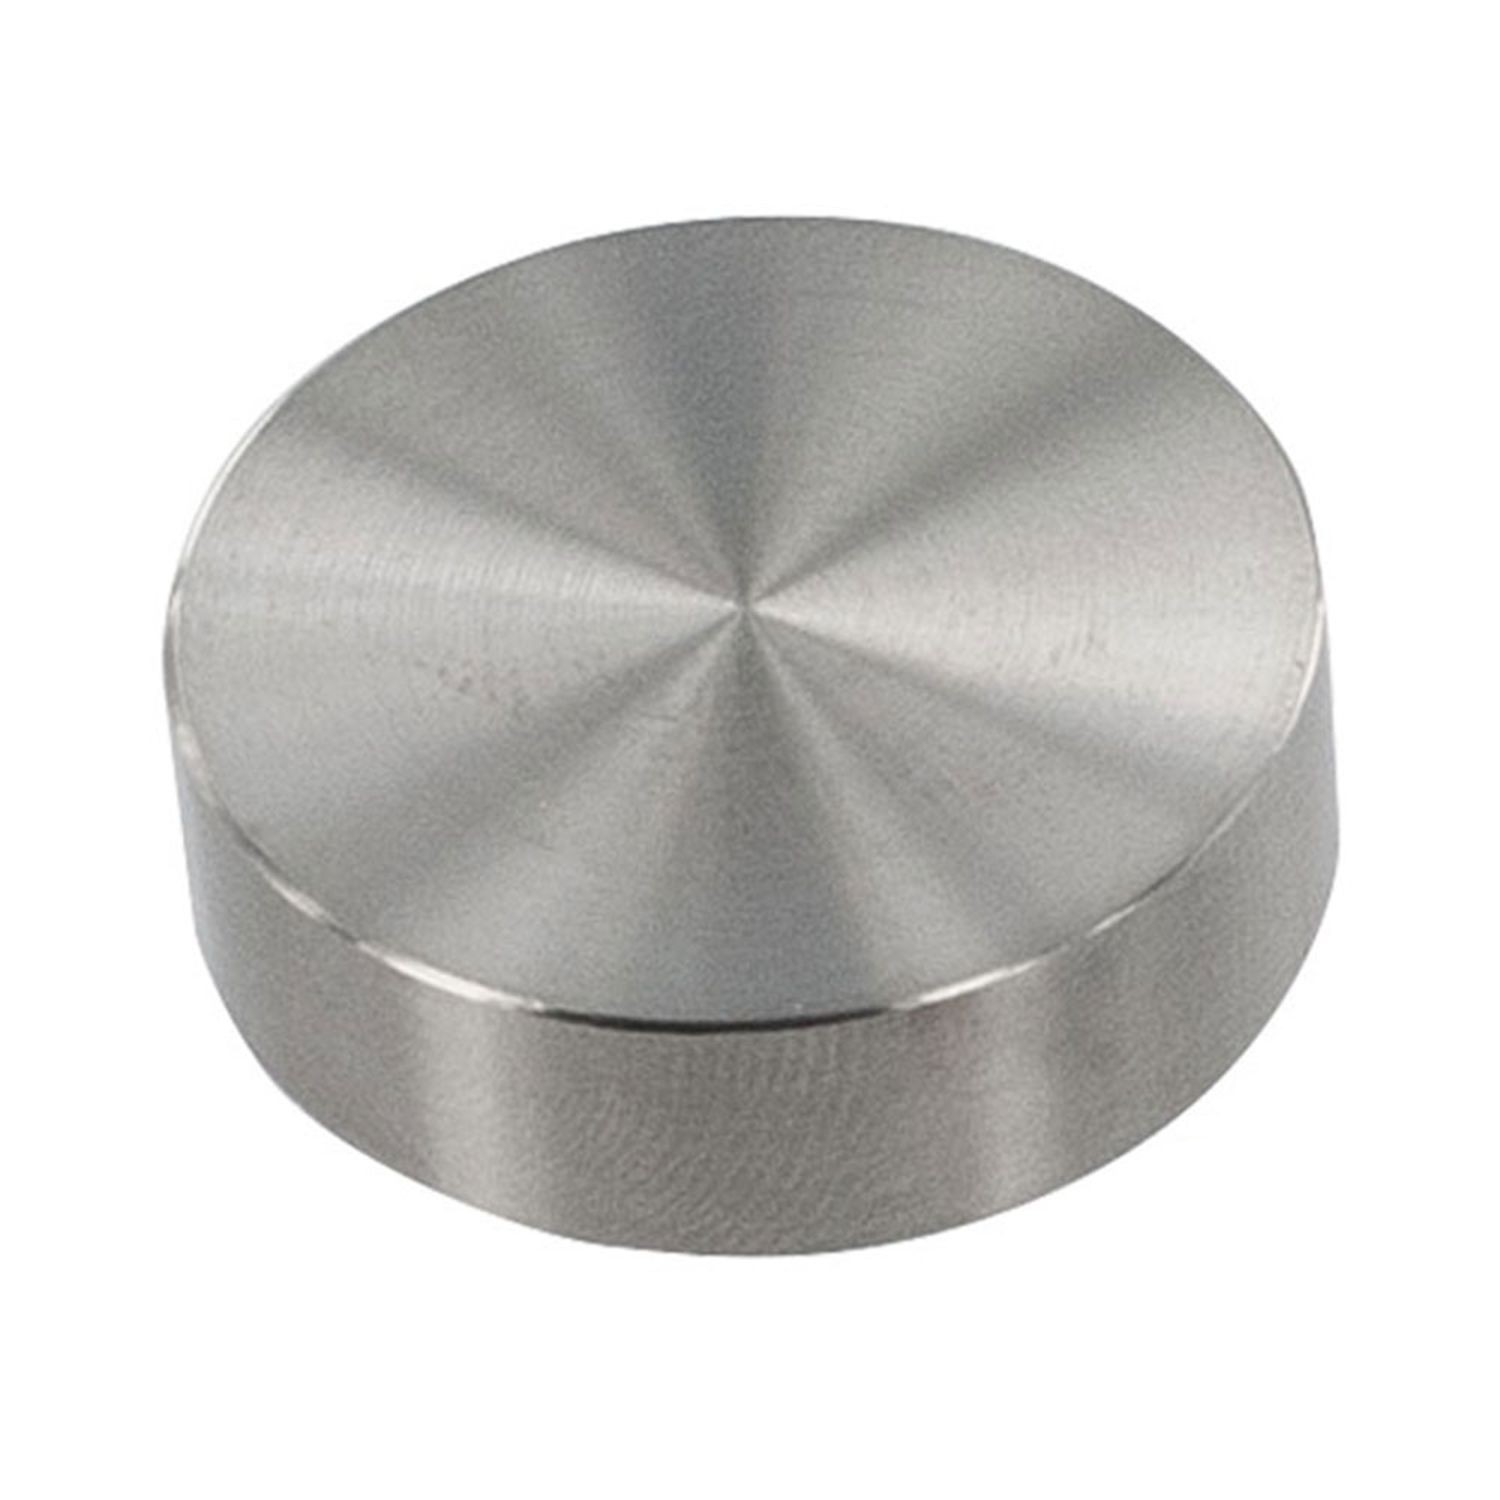 "1"" Diameter x 3/16"" High Brushed Stainless Steel Finish Eco Wall Mount Series Cap It Off Standoff"